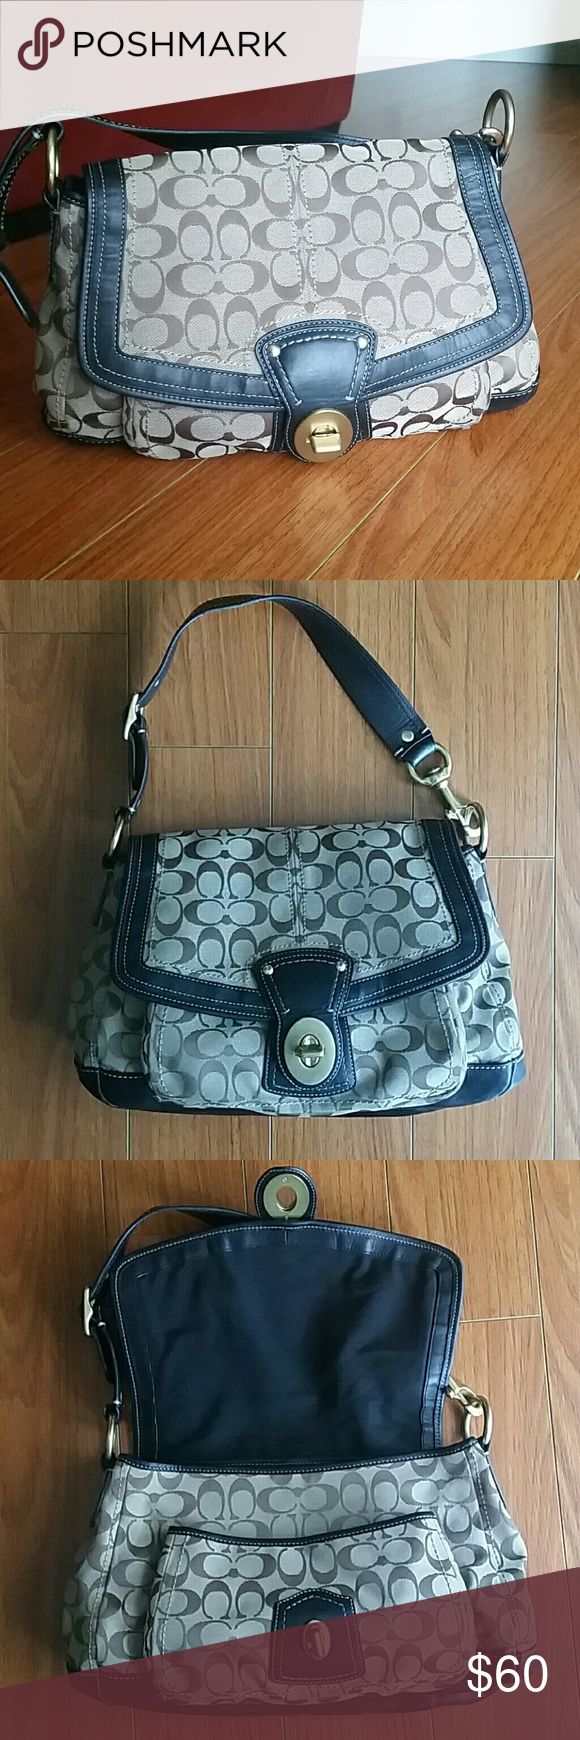 Coach hobo bag Classic Coach printed bag in good condition. No stains or scratches. Fabric is dark beige and brown. Leather is  dark brown. Coach Bags Hobos